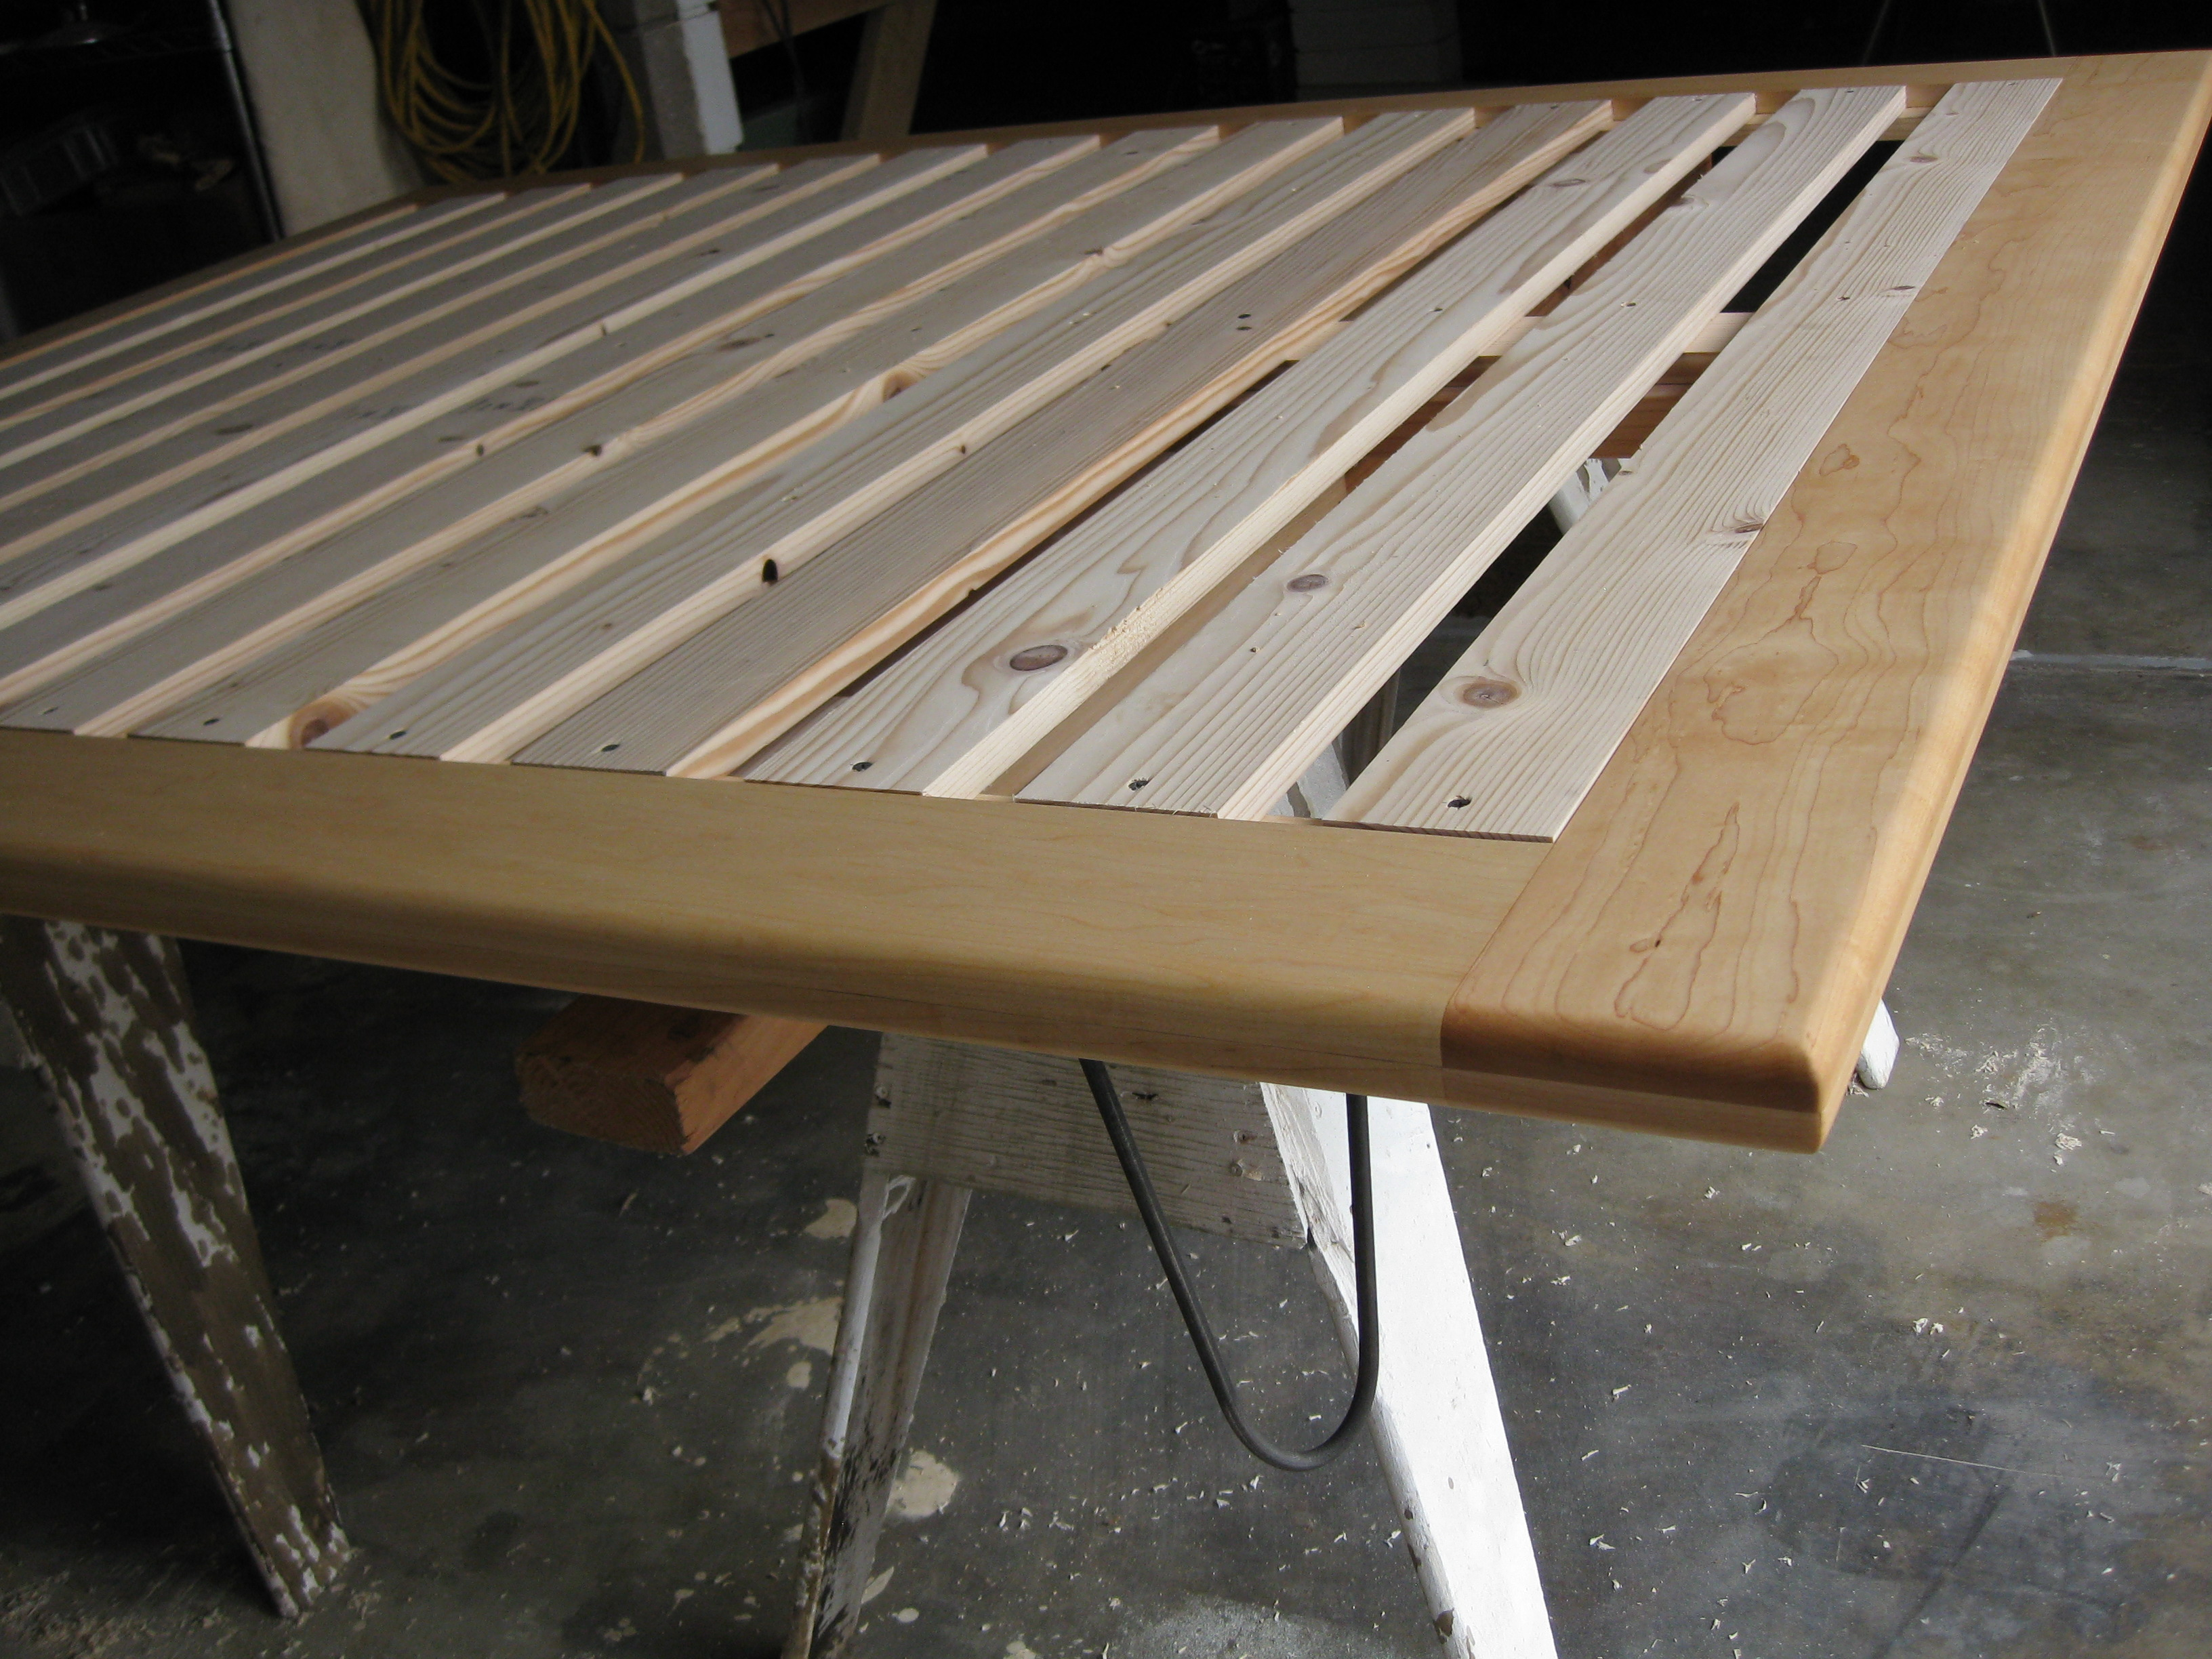 out the best way to build the slim line platform